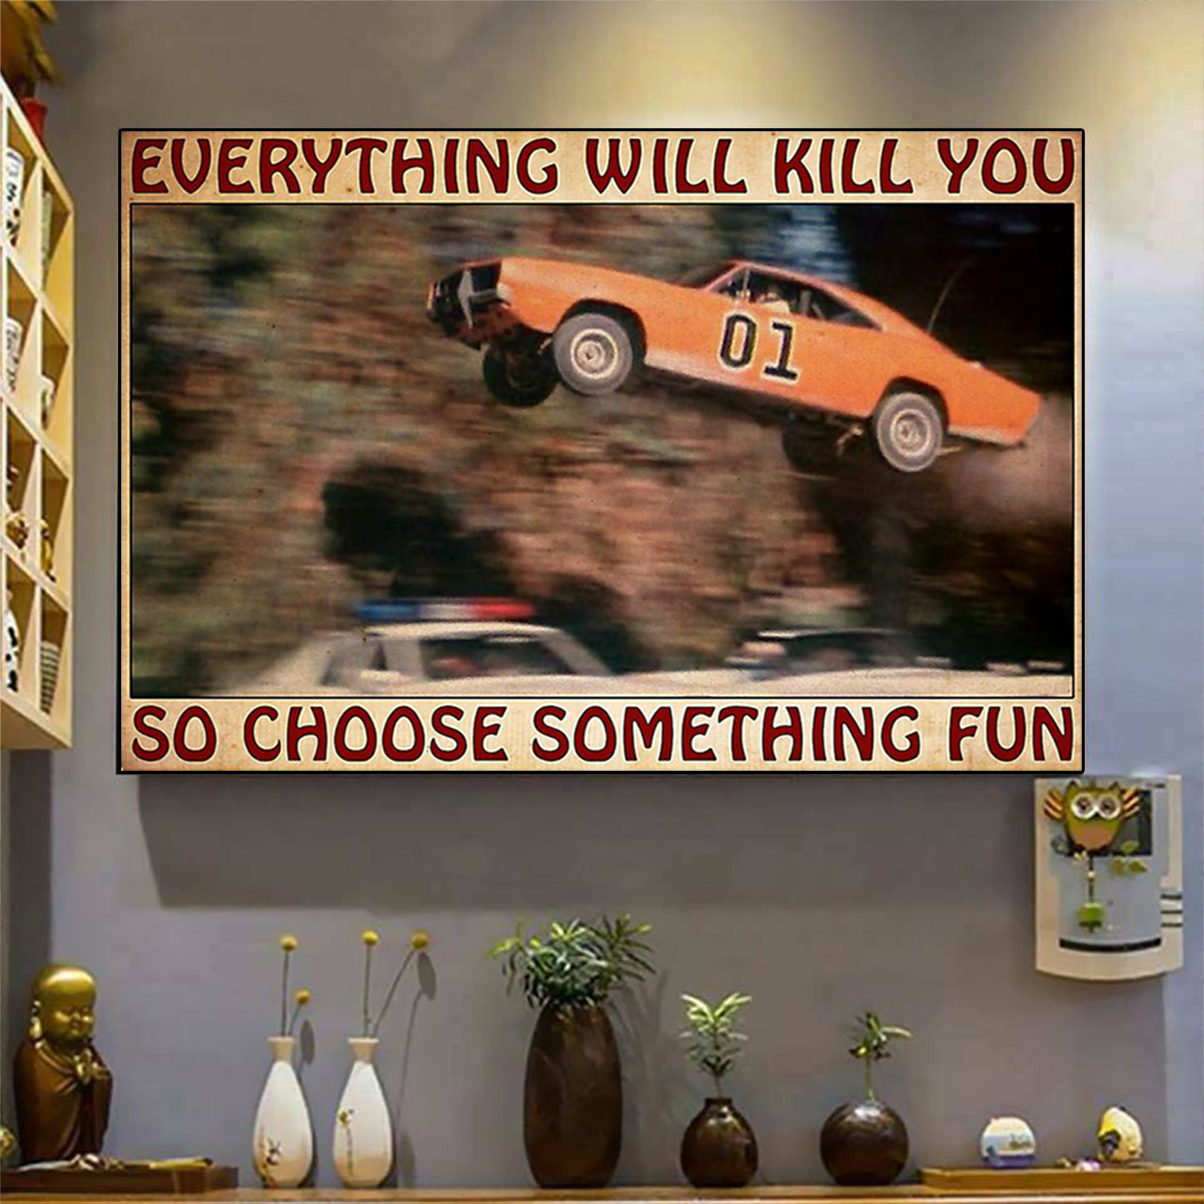 Dodge Charger Dukes of Hazzard everything will kill you so choose something fun poster A2